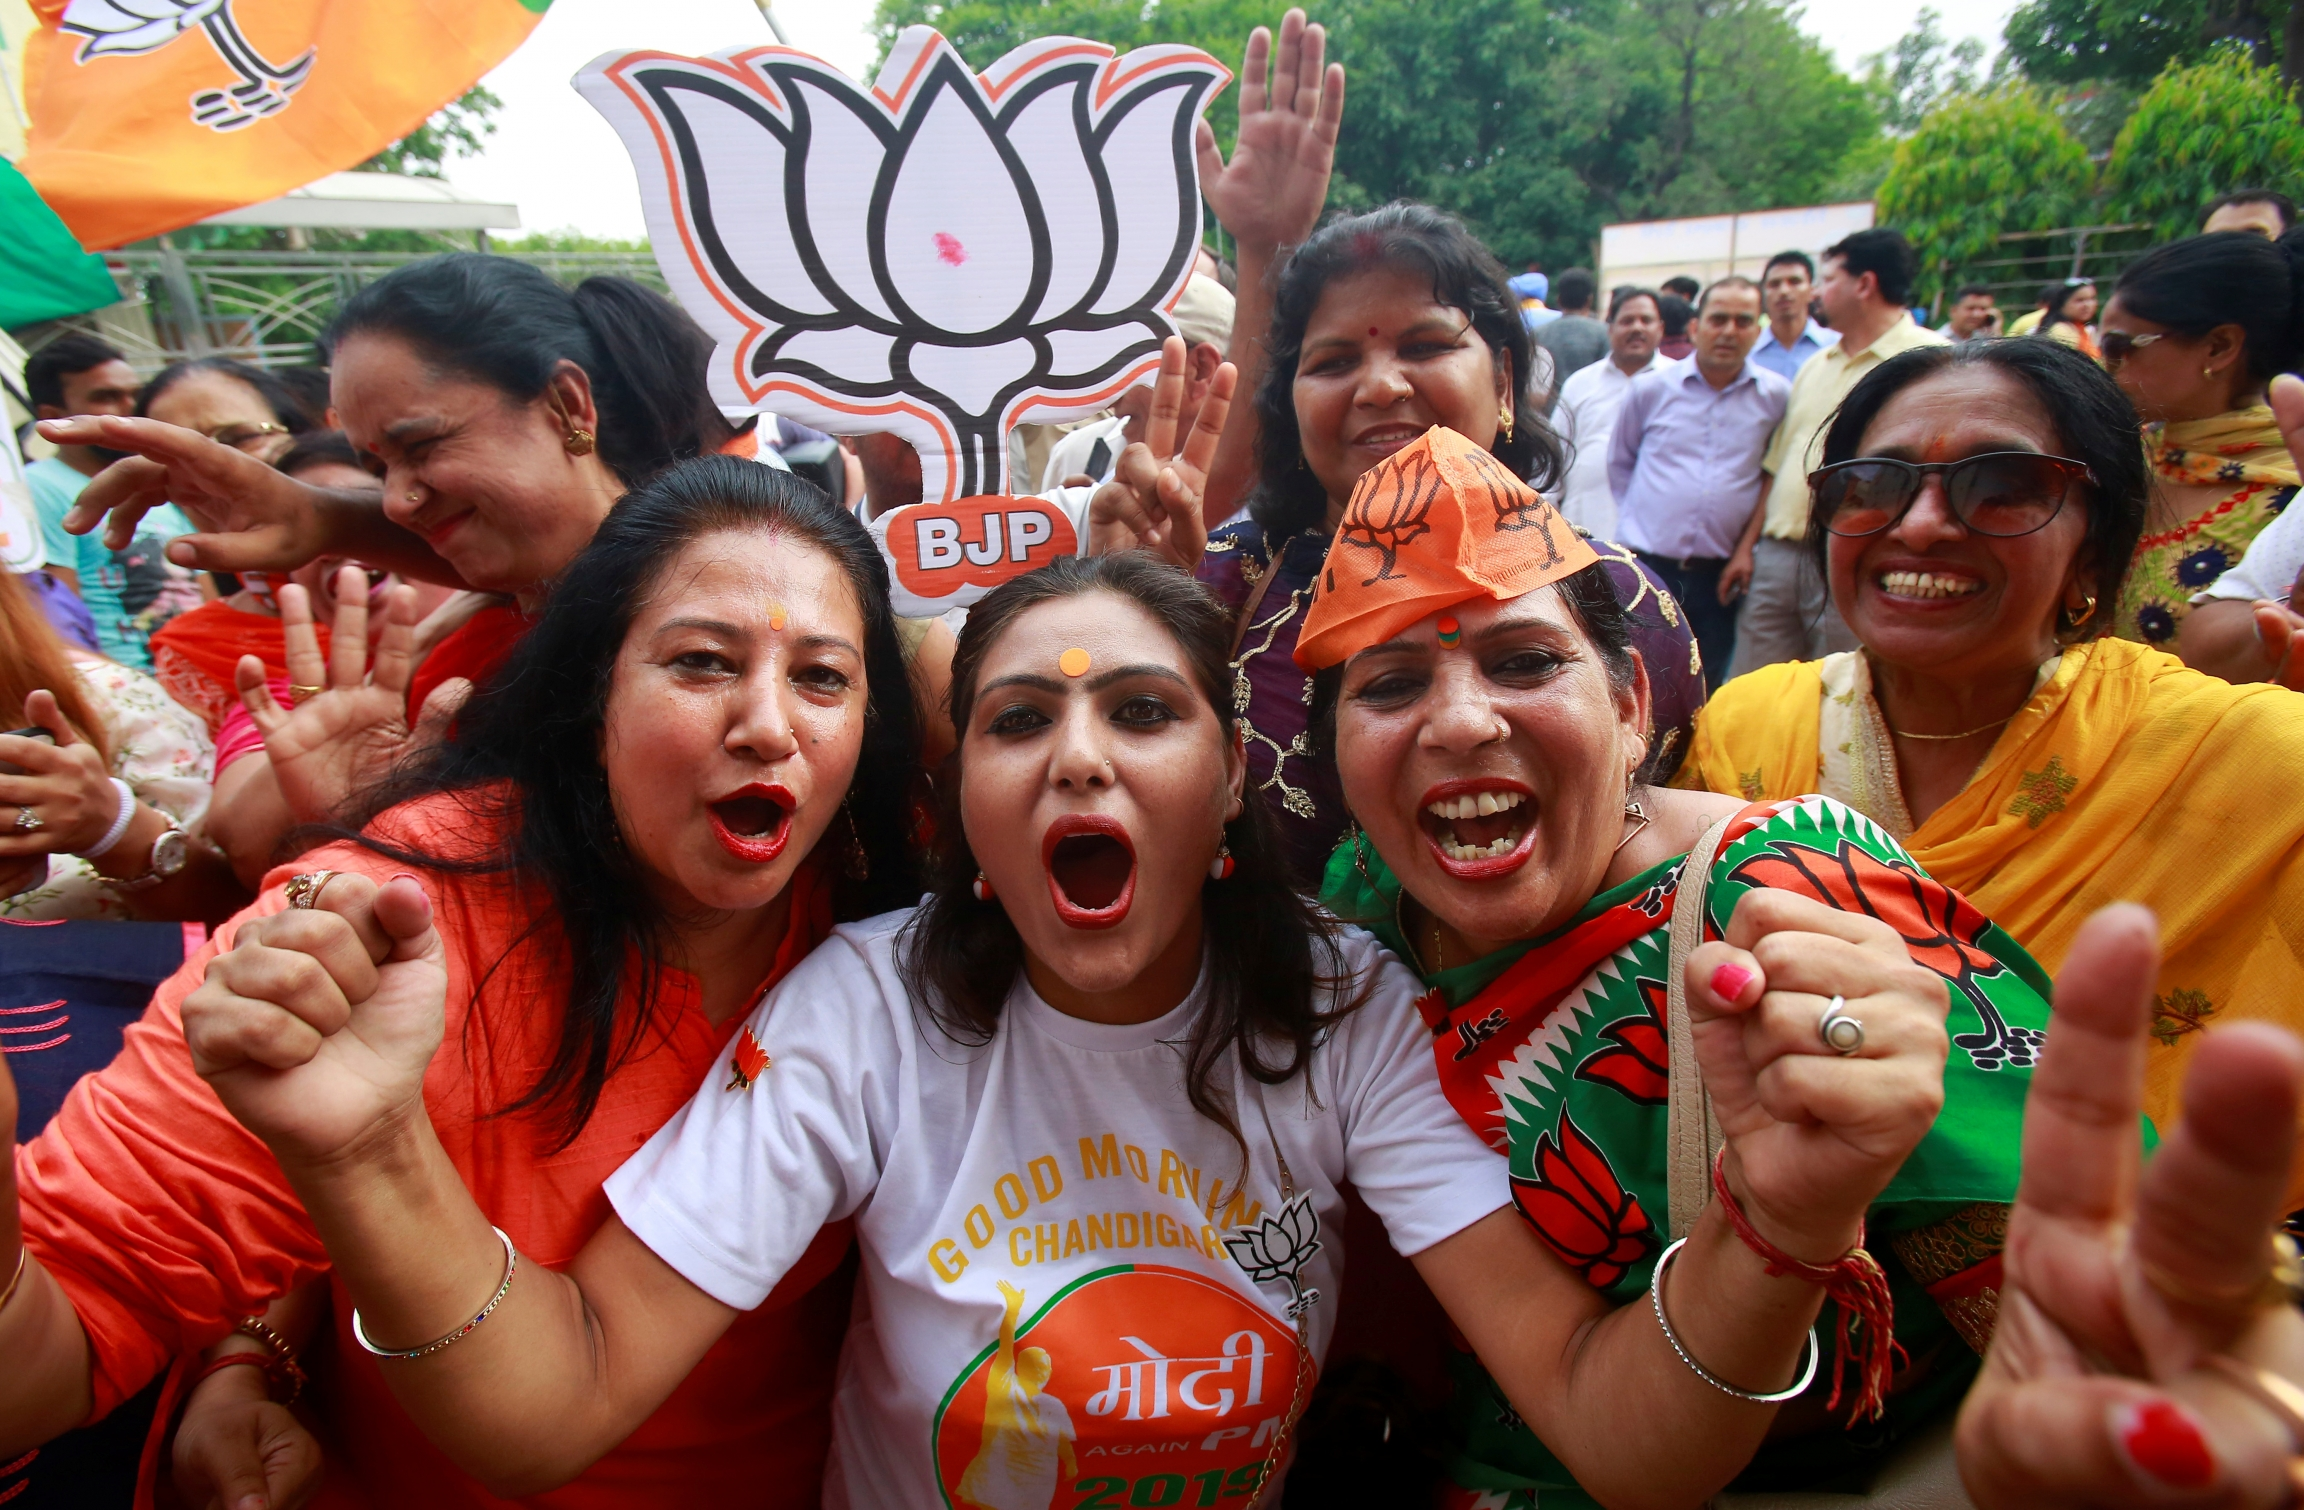 Three women cheer during election results in India wearing orange for BJP.